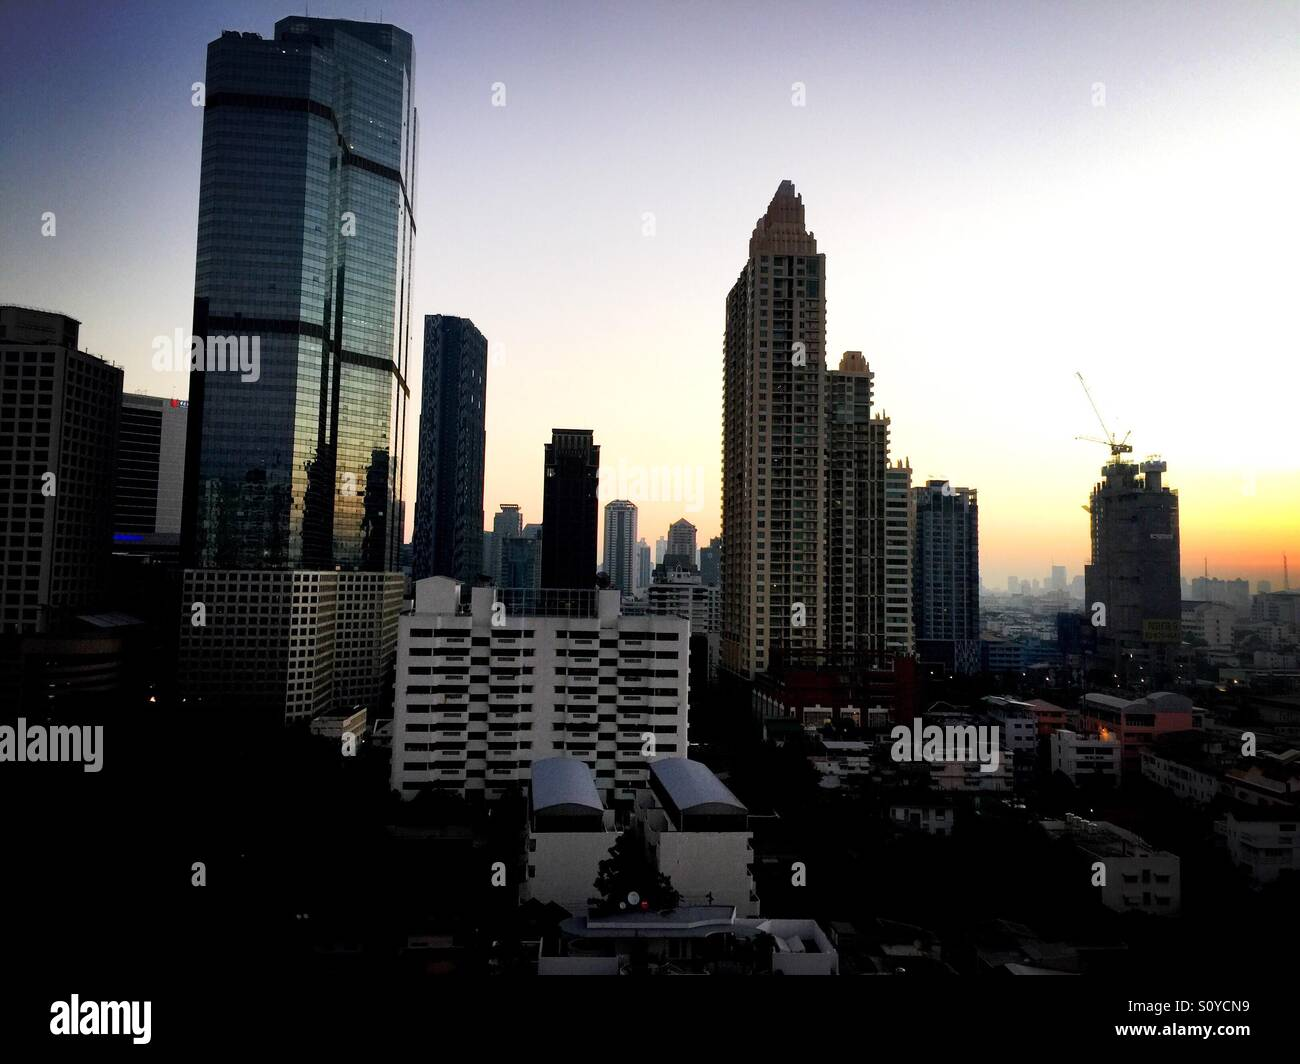 View of Bangkok's urban sprawl at dawn - Stock Image